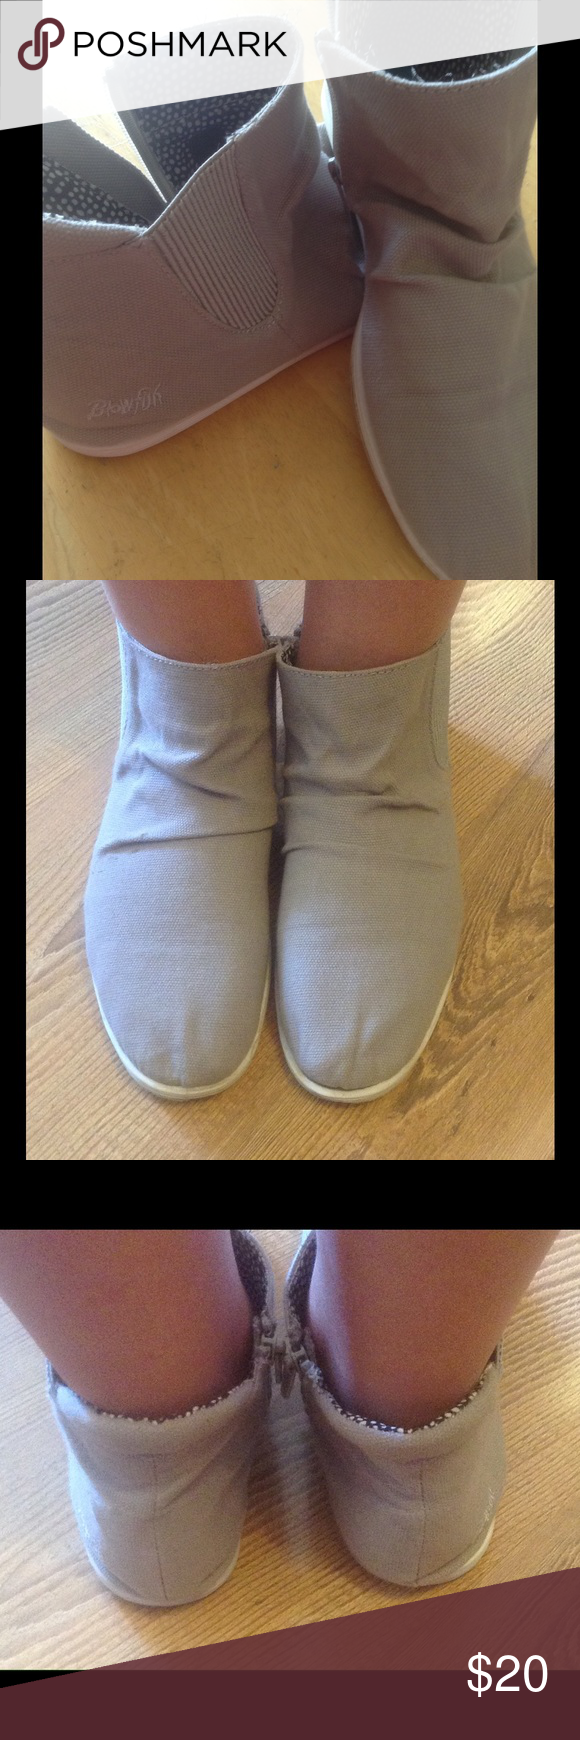 Blowfish ankle boots Grey Blowfish ankle boots.  Zipper on one side, elastic on the other side.  Super cute shoes.  Canvas material.  Only worn a couple of times.  In great condition. Blowfish Shoes Ankle Boots & Booties